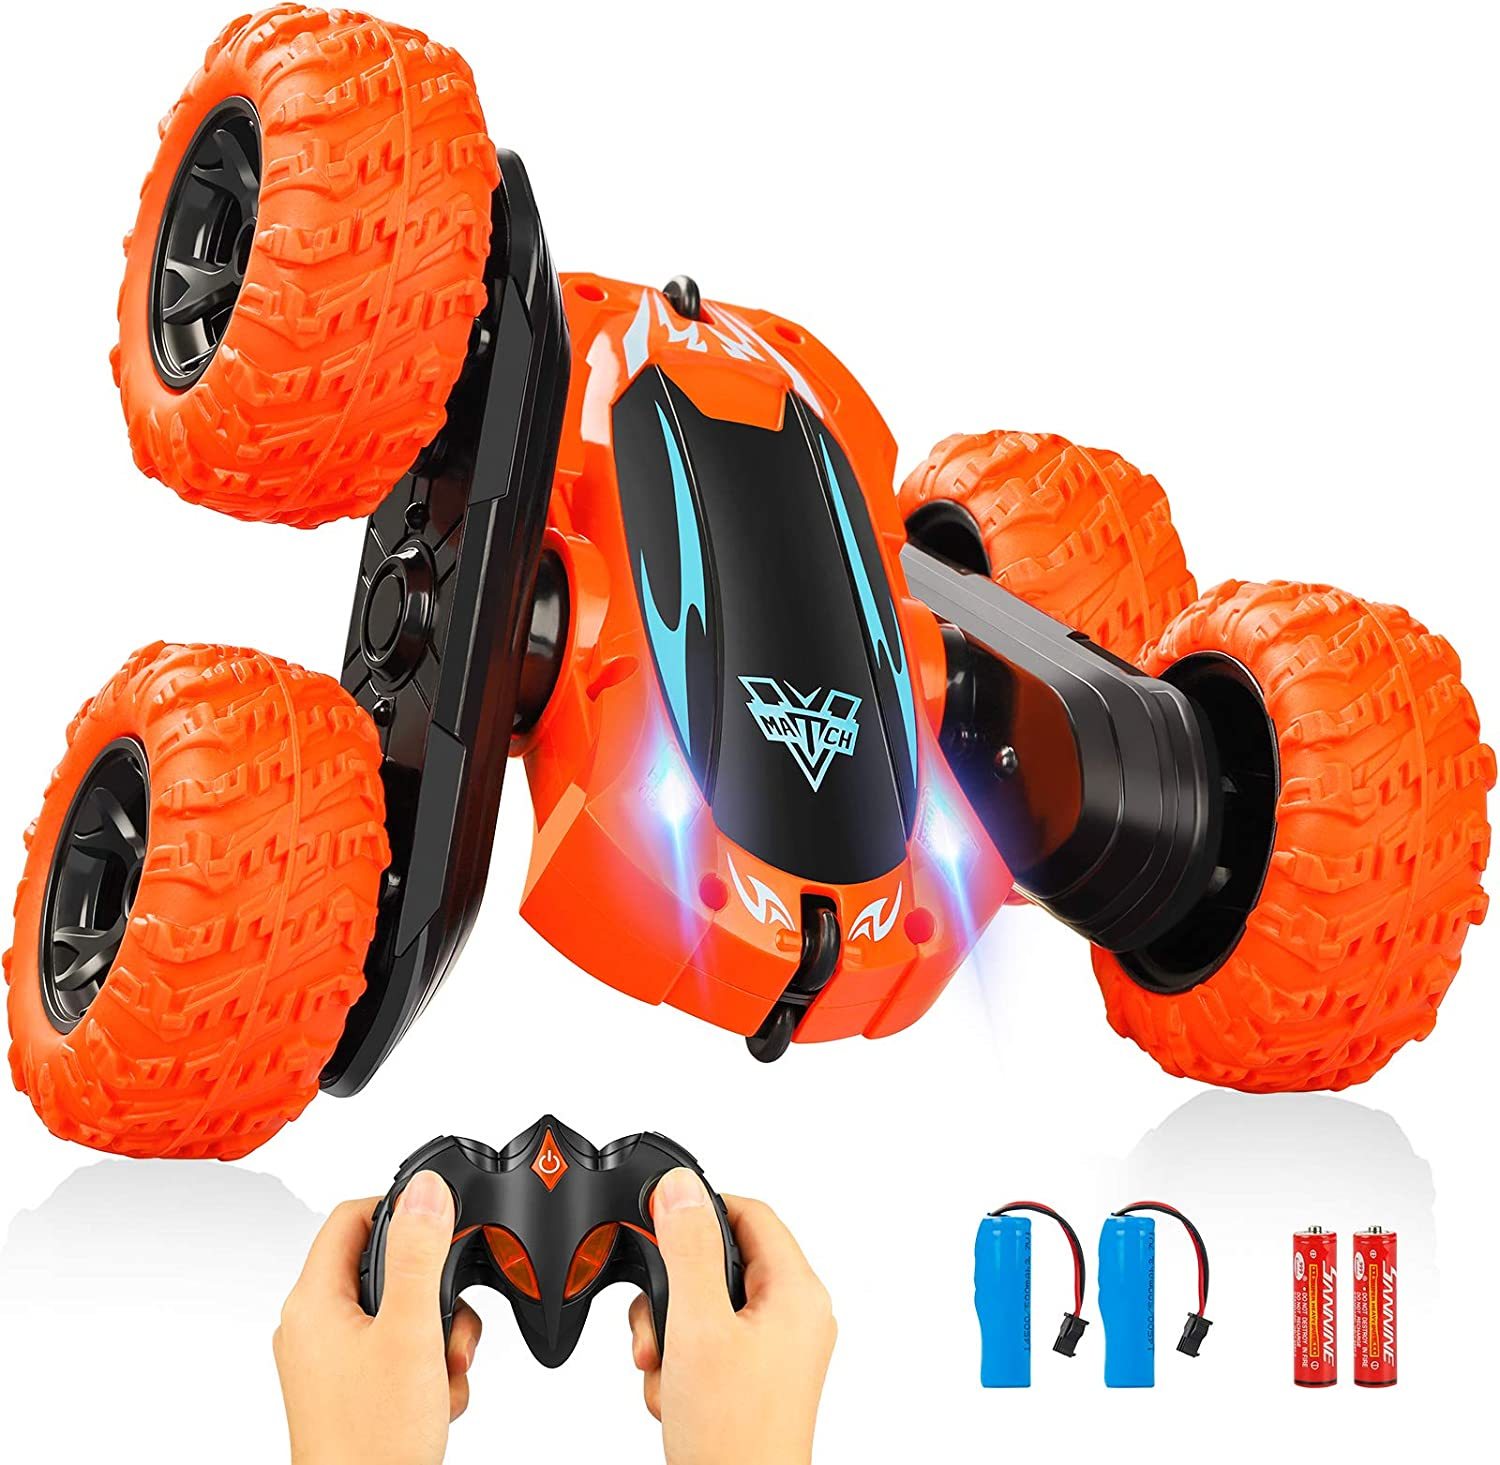 Remote Control Car,2.4GHz Electric Race RC Stunt Car Double Sided 360/°Flips Rotating Vehicles with LED Headlights,4WD High Speed Off Road Truck Kids Toys for 3 4 5 6 7 8-12 Year Old Boys Teens Adults